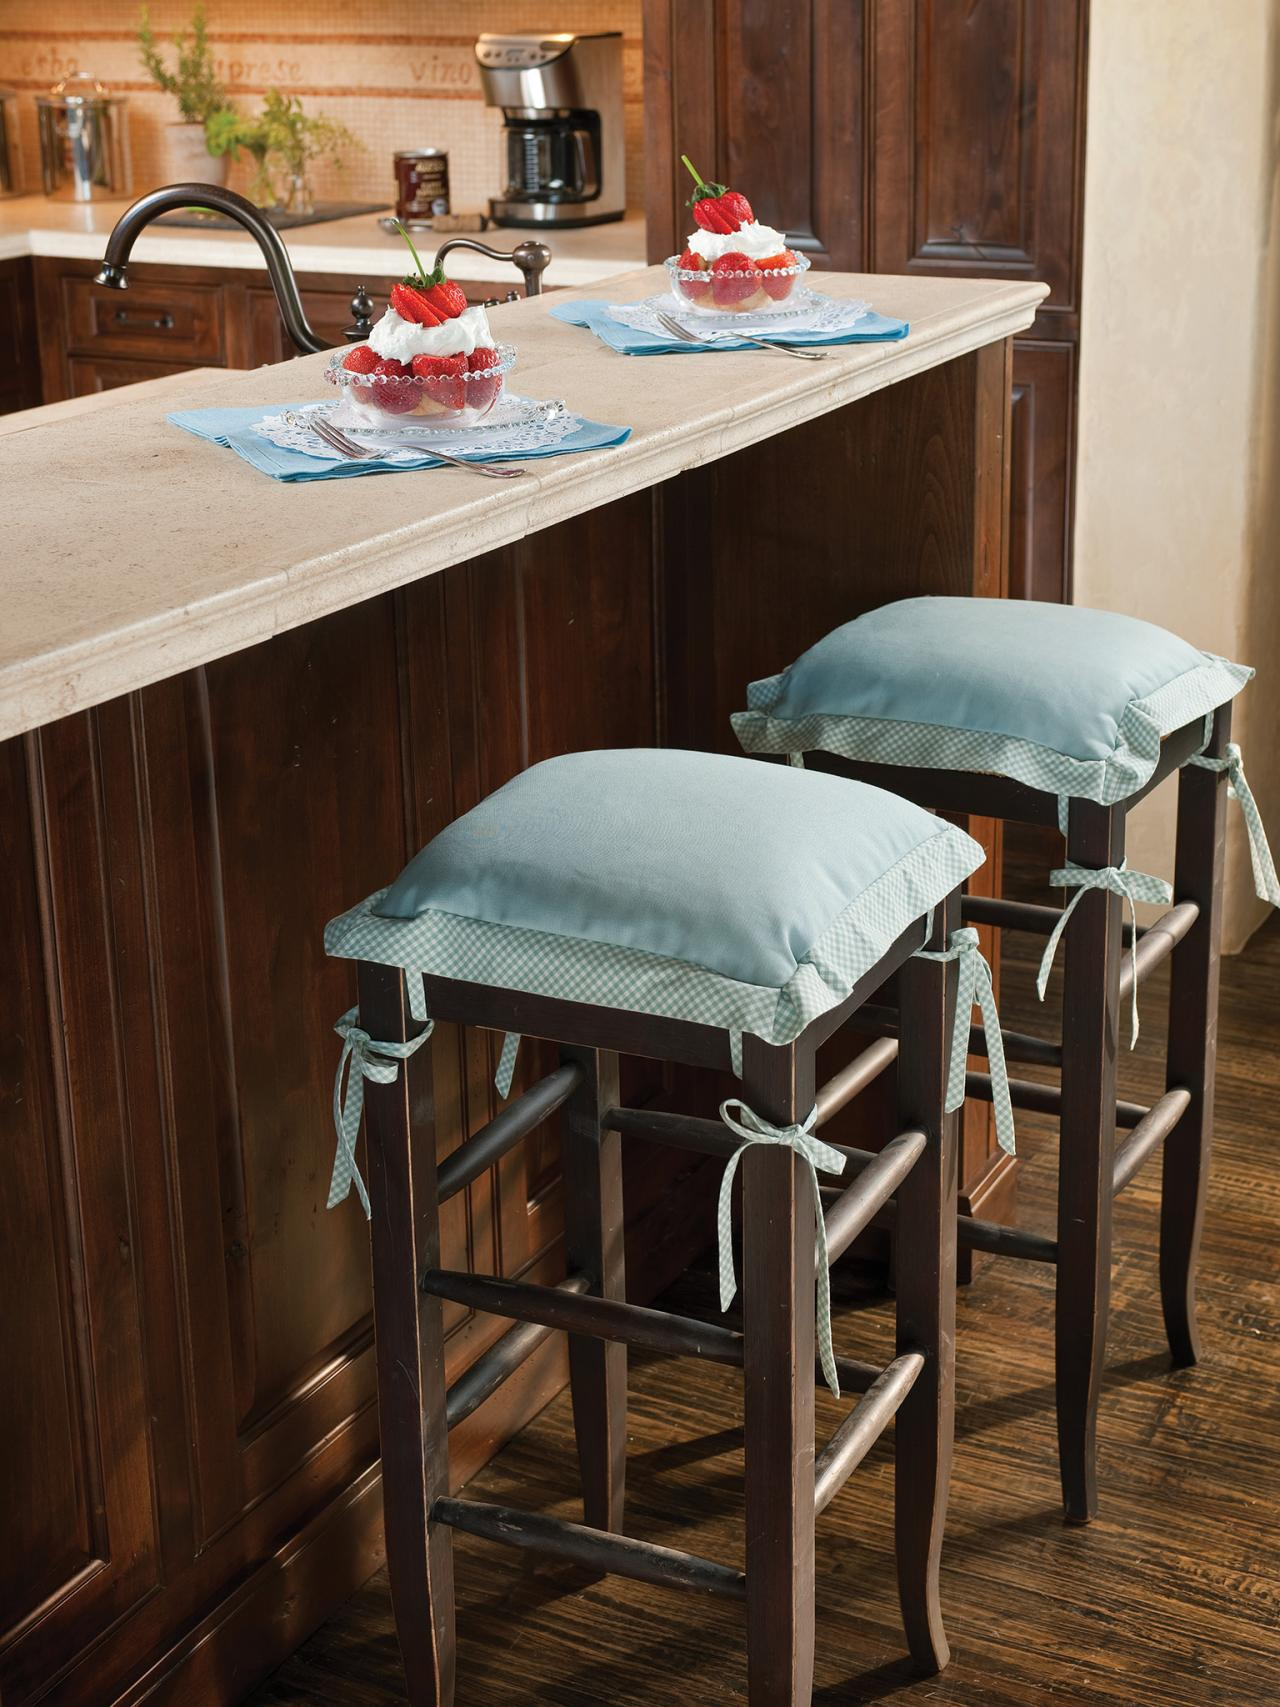 Photos HGTV : CI Allure of French and Italian DecorBlue Cushioned Bar Stools Pg1413x4jpgrendhgtvcom12801707 from photos.hgtv.com size 1280 x 1707 jpeg 254kB